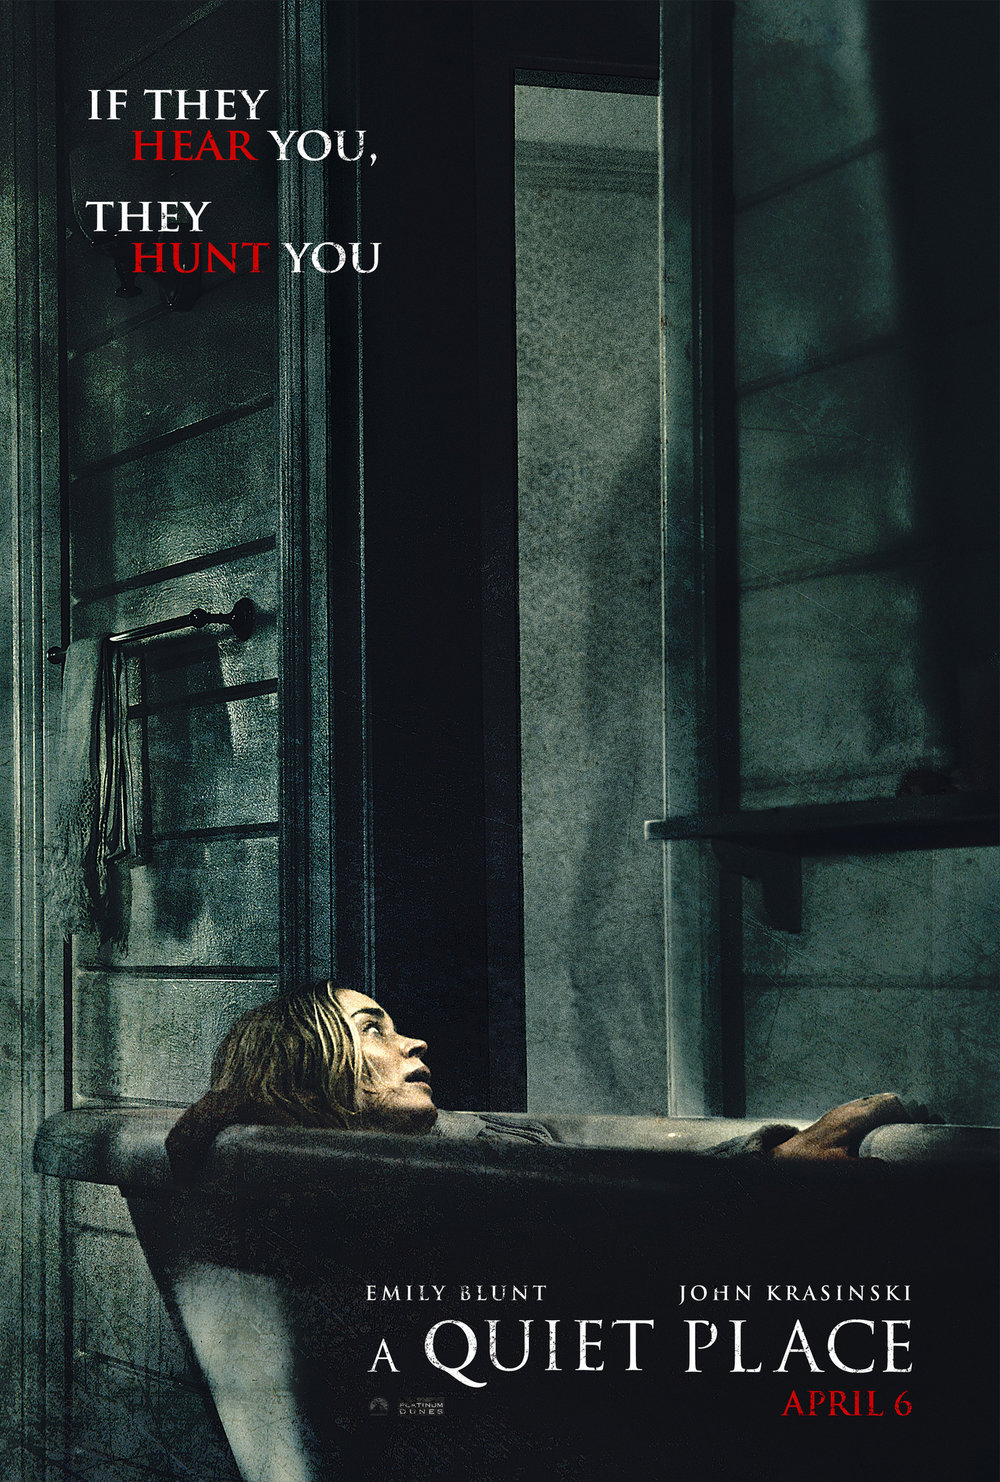 Tense, suspenseful, and dramatic, A Quiet Place is the only film where I've heard the audience be 100% silent the entire running time. Despite a couple goofy plot elements, an exciting watch. -